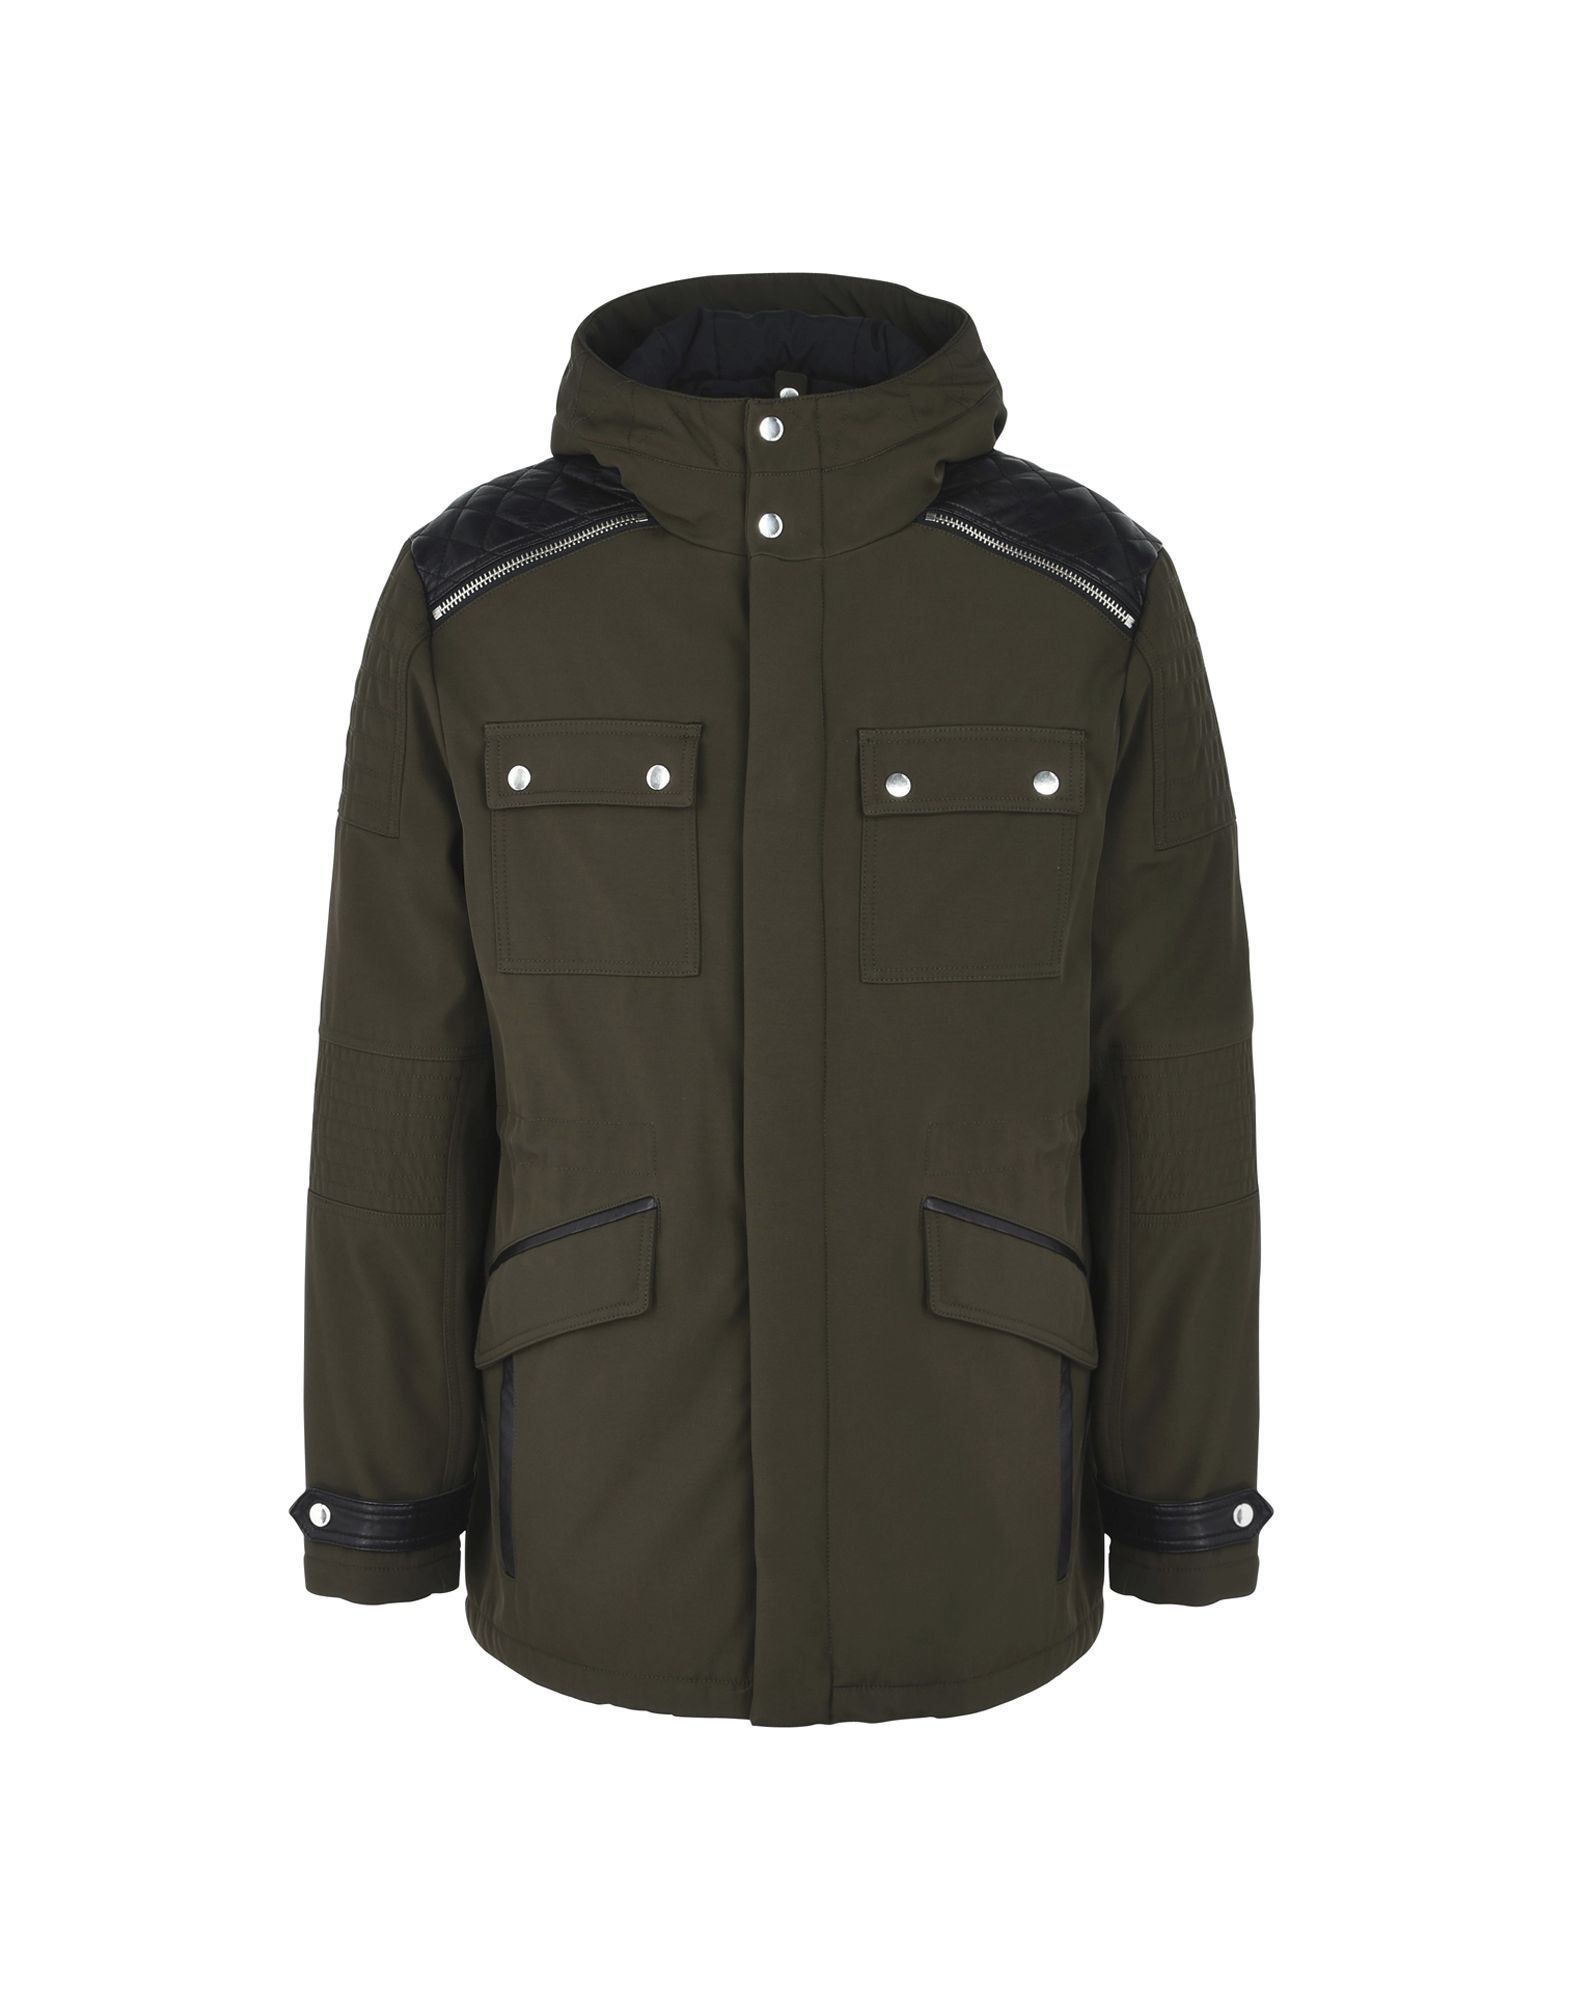 The Kooples Military Green Padded Overcoat